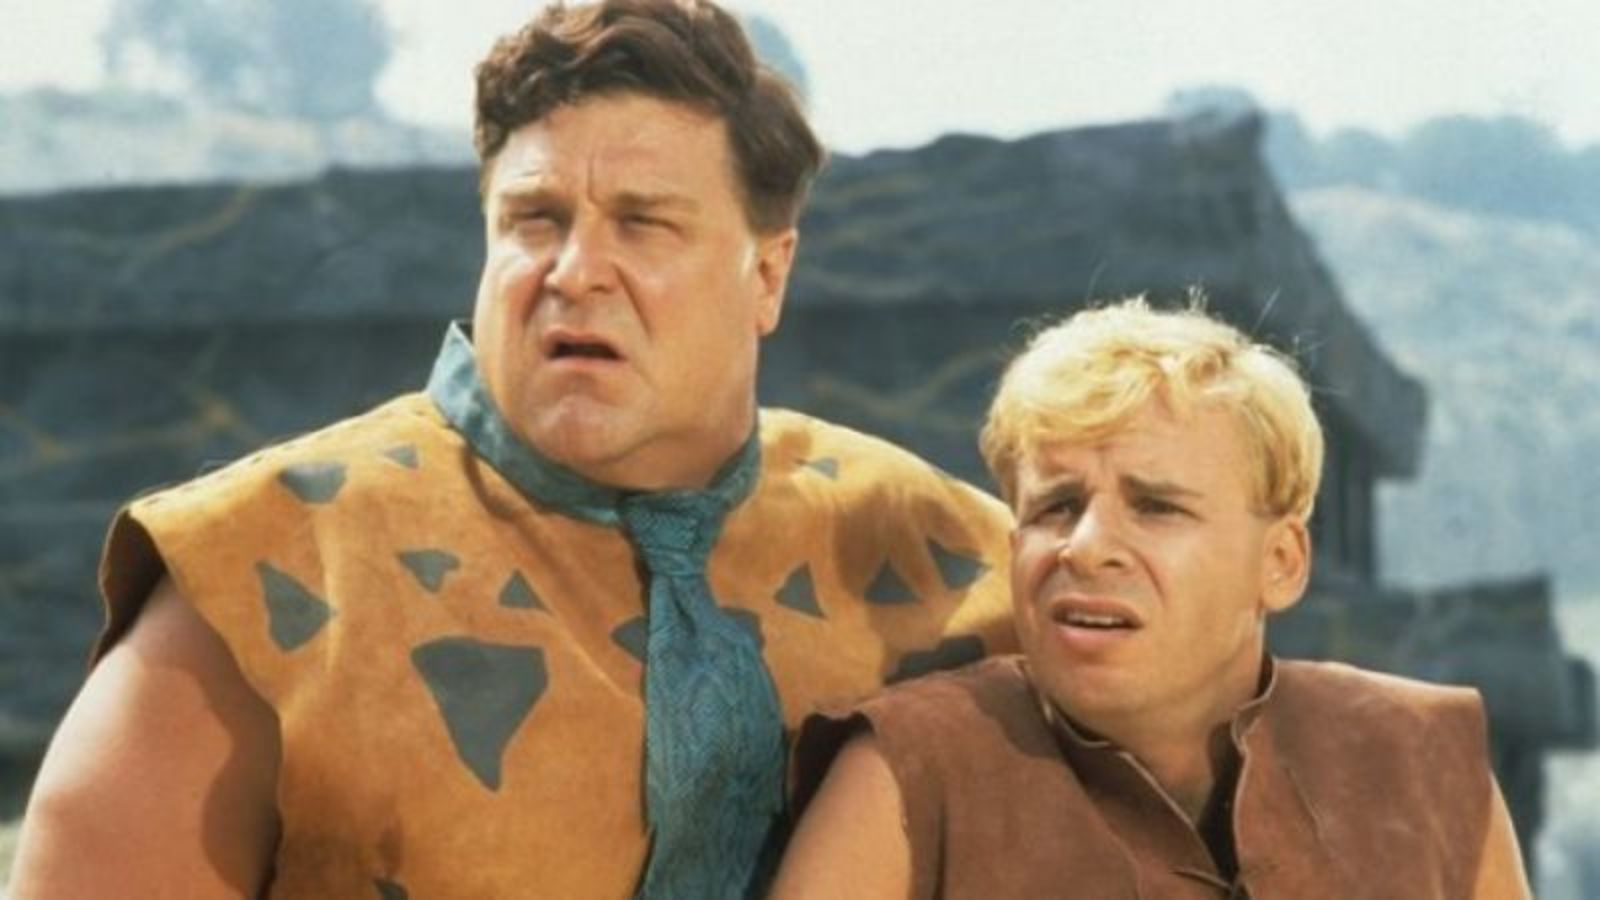 Best friends and co-workers - Fred Flintstone (John Goodman) and Barney Rubble (Rick Moranis) in The Flintstones (1994)